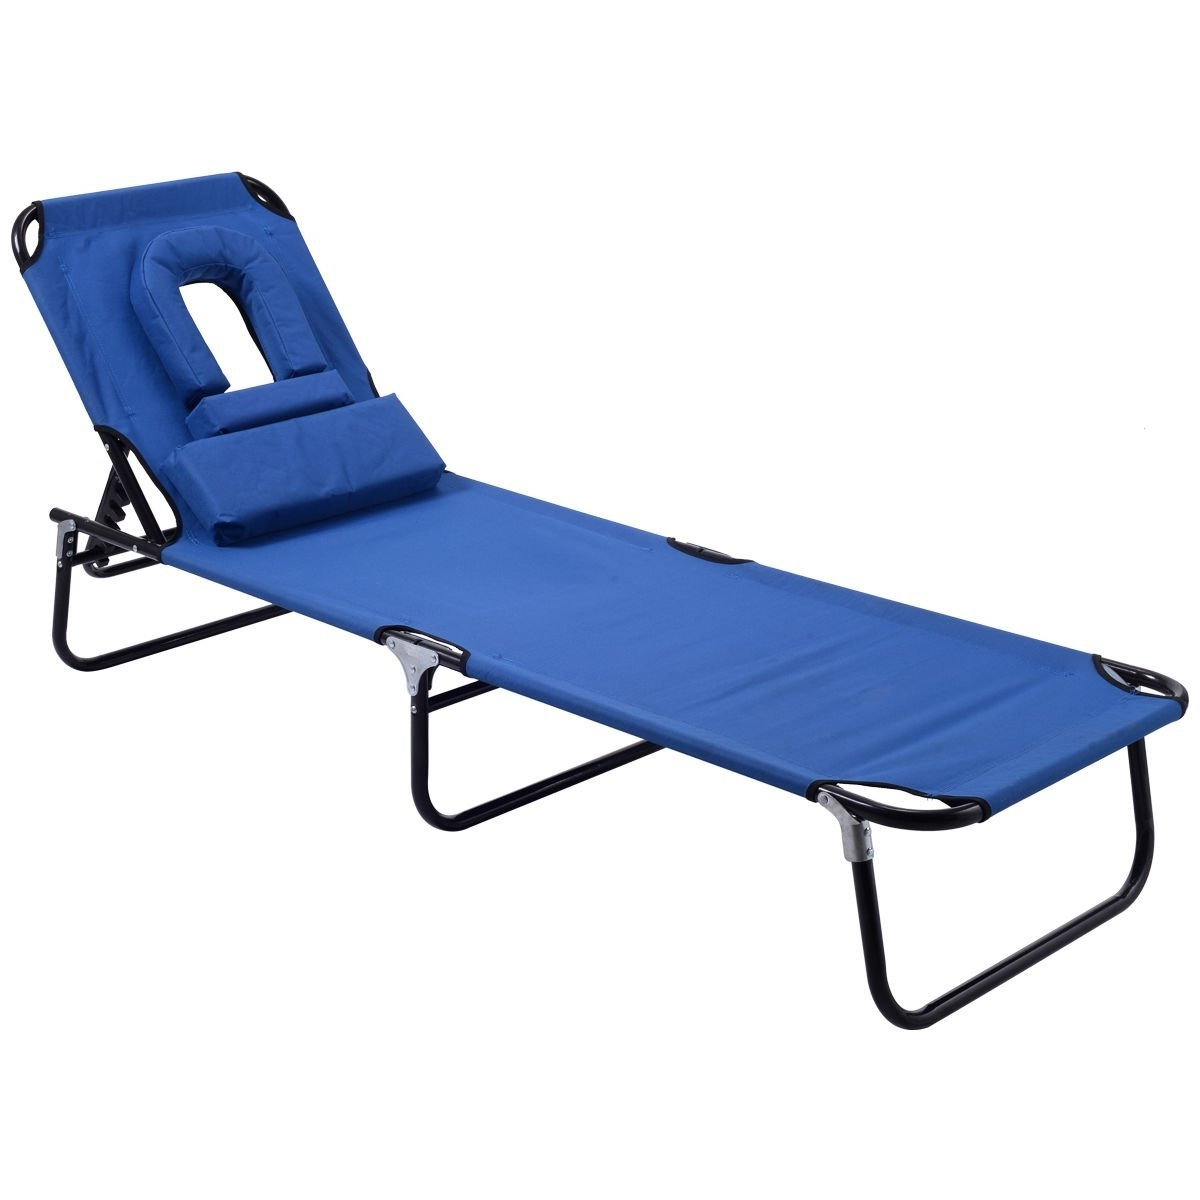 Amazon: Goplus Folding Chaise Lounge Chair Bed Outdoor Patio Regarding Most Recently Released Beach Chaise Lounge Chairs (View 4 of 15)